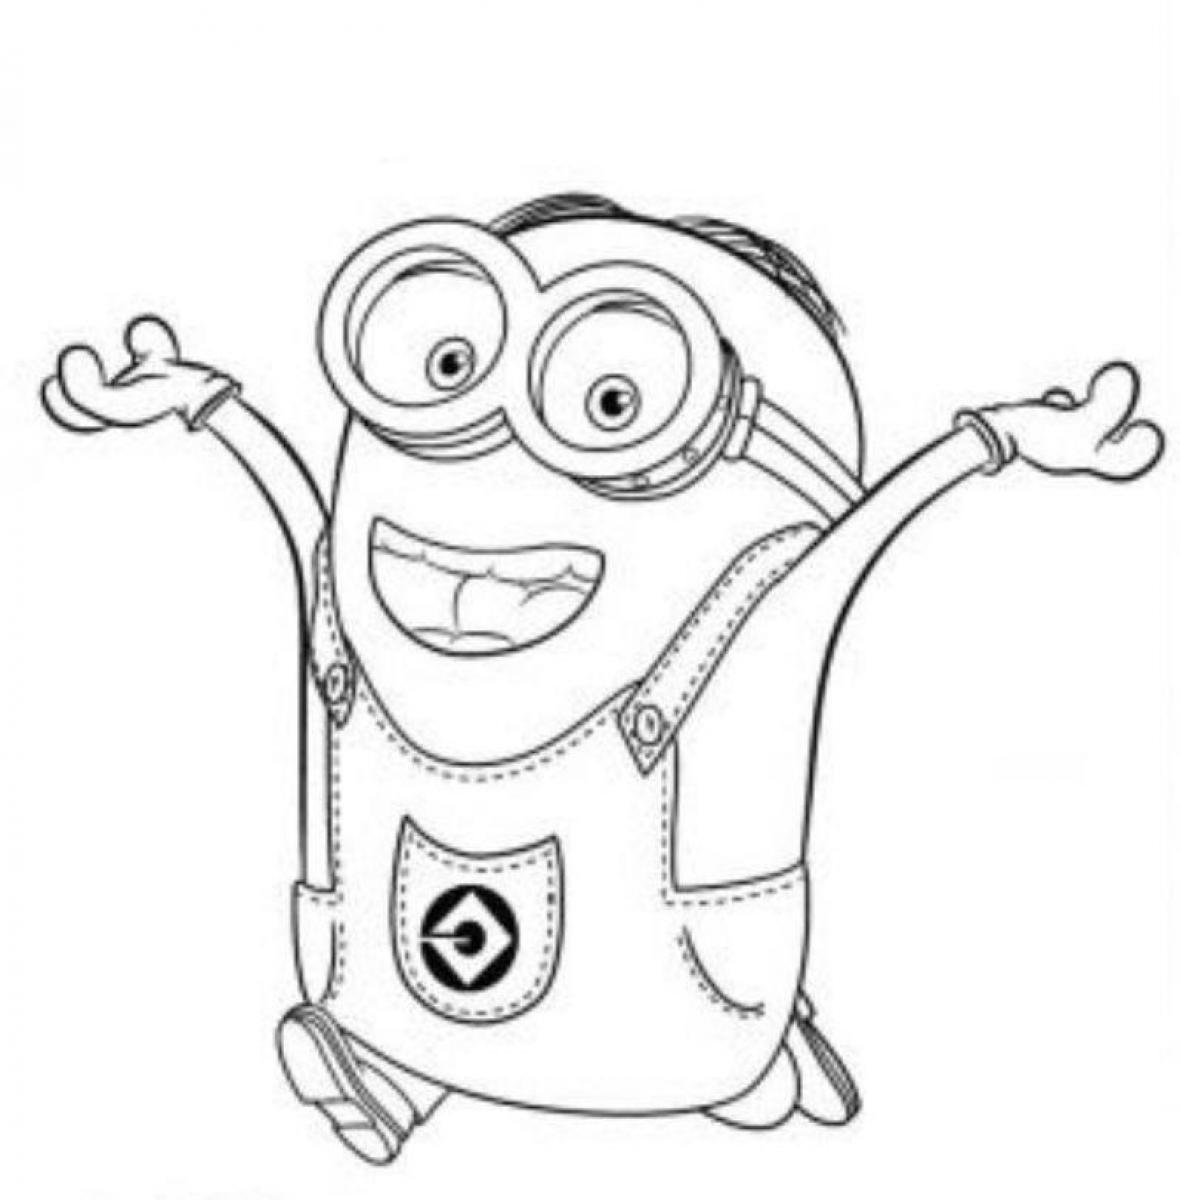 Purple Minion Coloring Page At Getcolorings